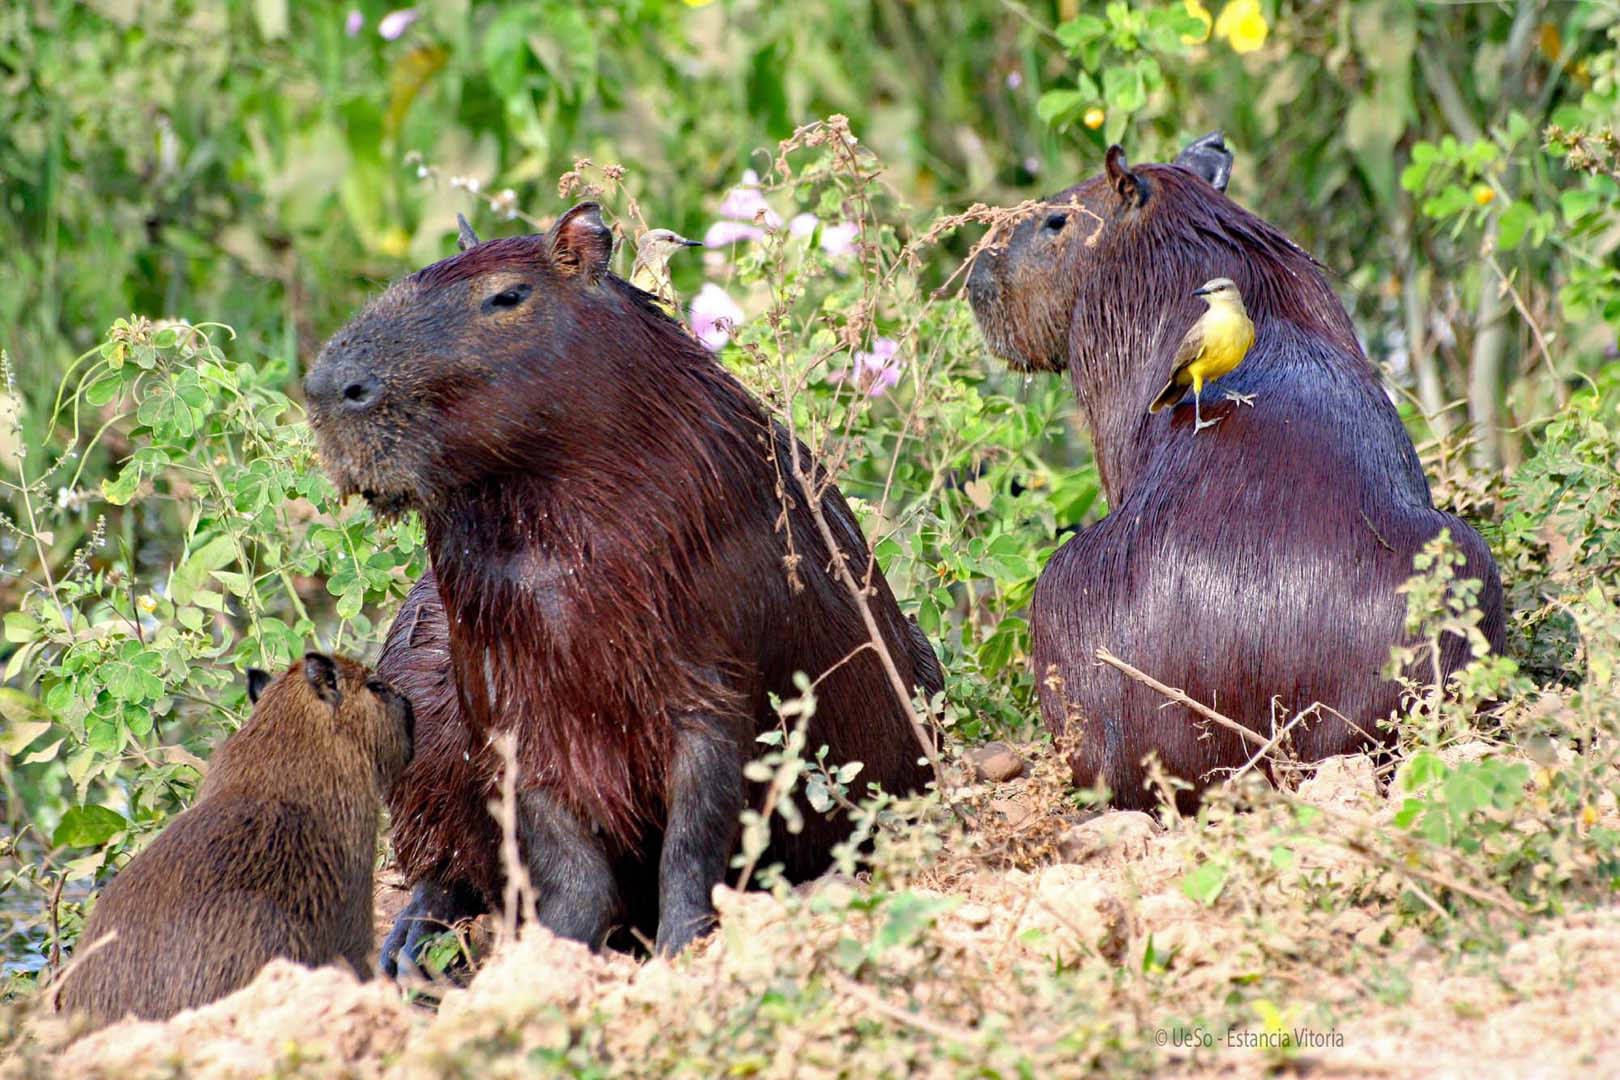 Capybara at the river bank